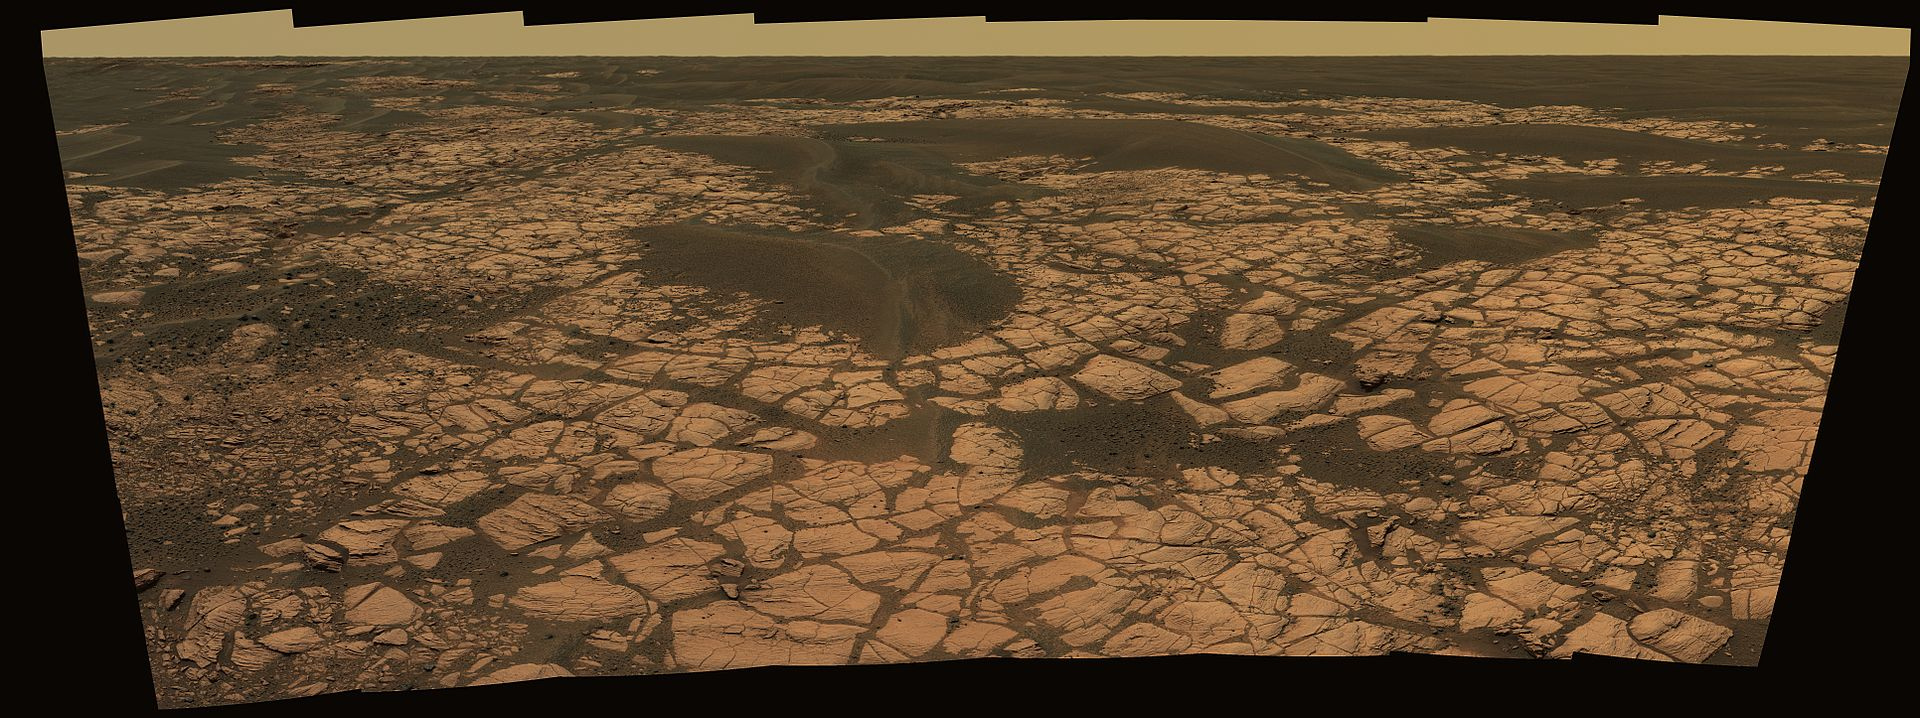 Opportunity_Rover-Olympia_Panorama.jpg.0bd2c0098a607054036309441b007107.jpg